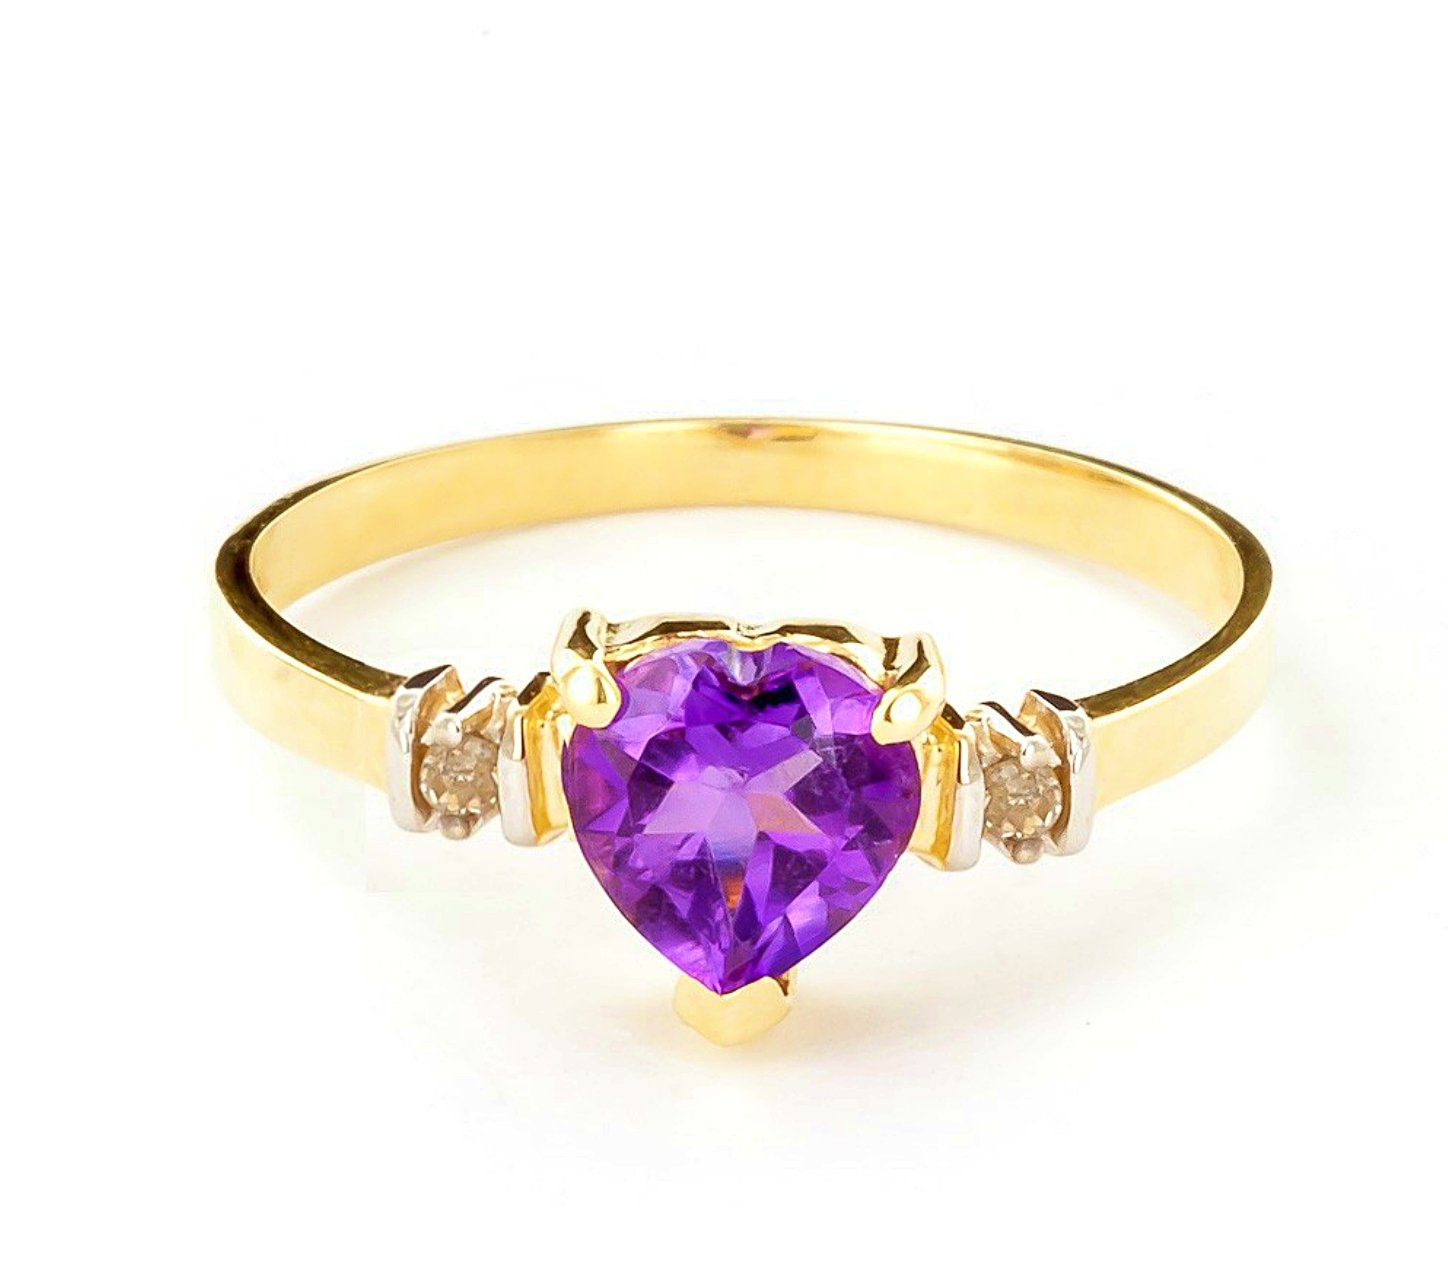 14k Yellow Gold Ring with Genuine Diamonds and Natural Heart-shaped Purple Amethyst - Size 8.0